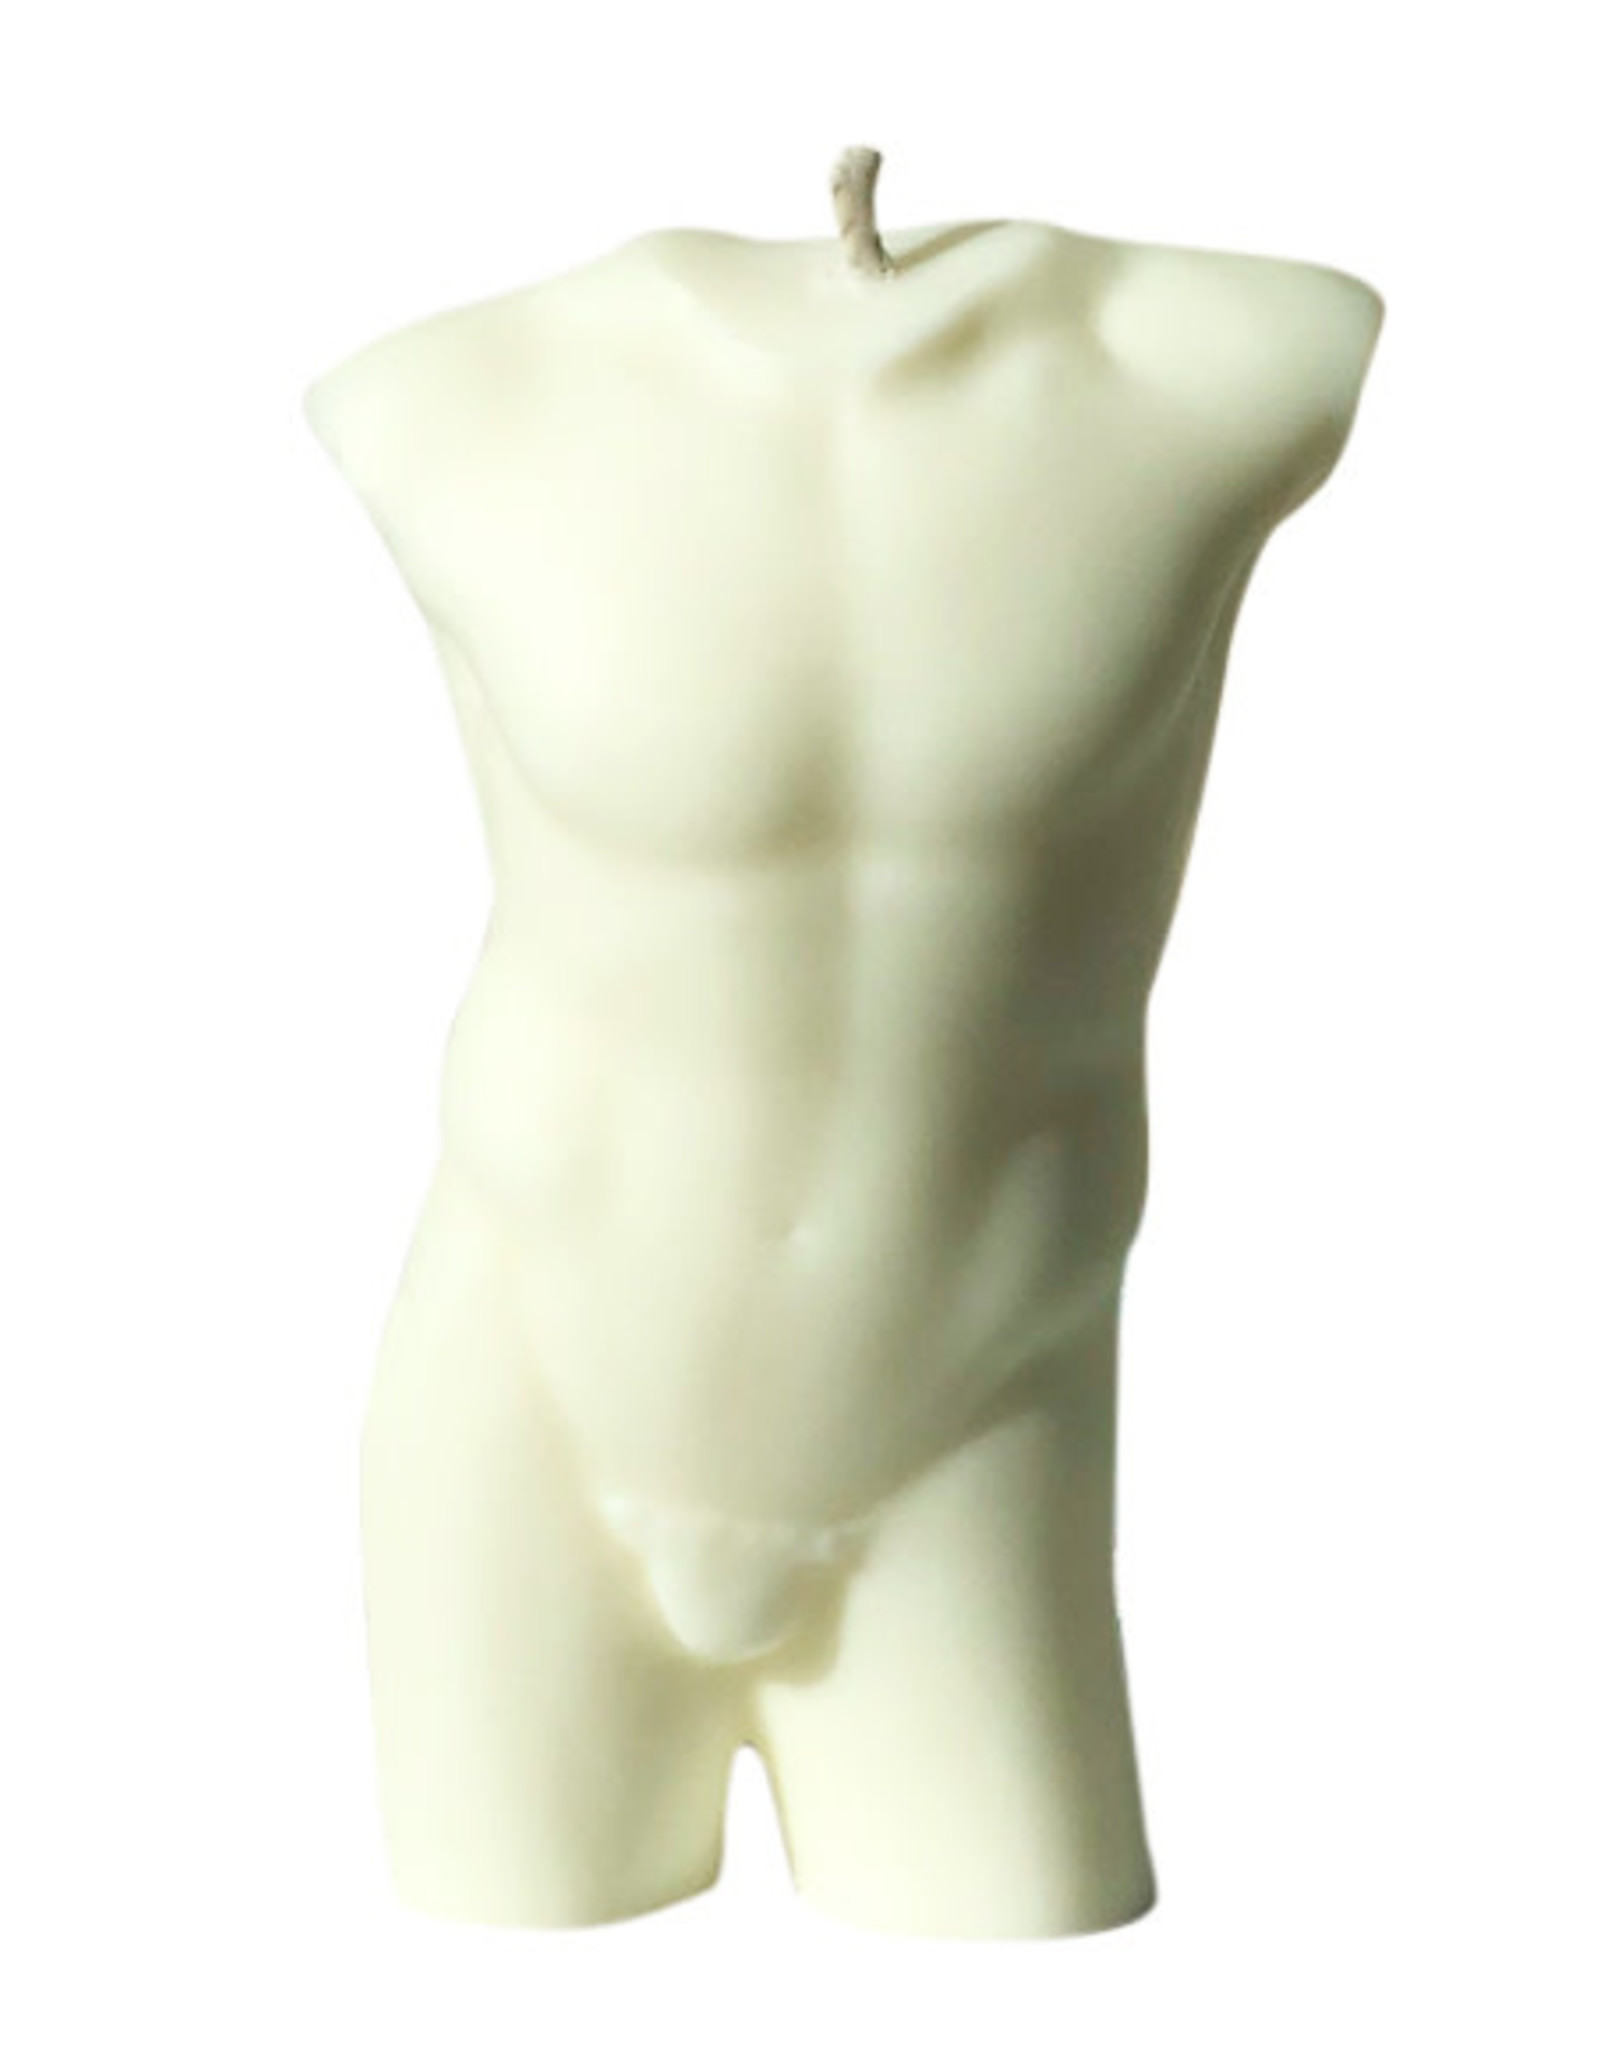 Nude Male Candle